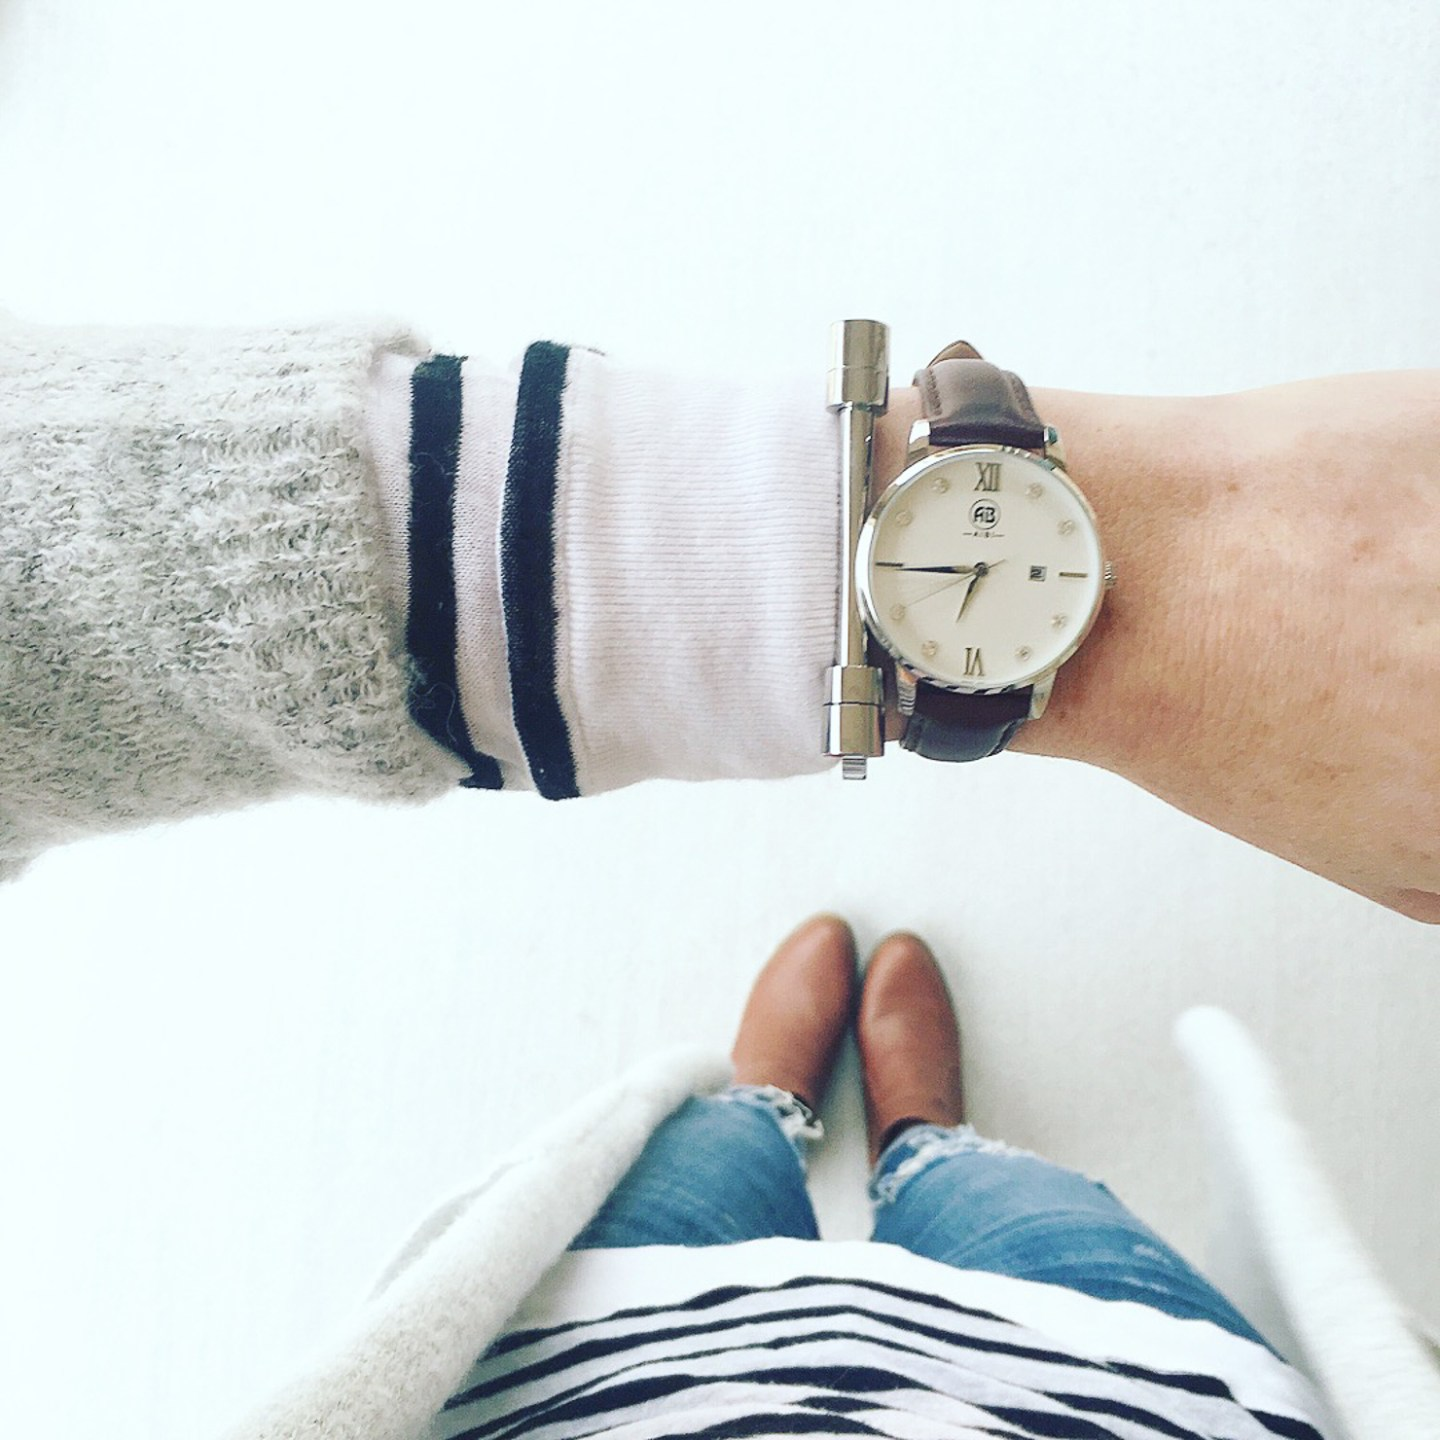 albi watches, striped t by alexander wang top